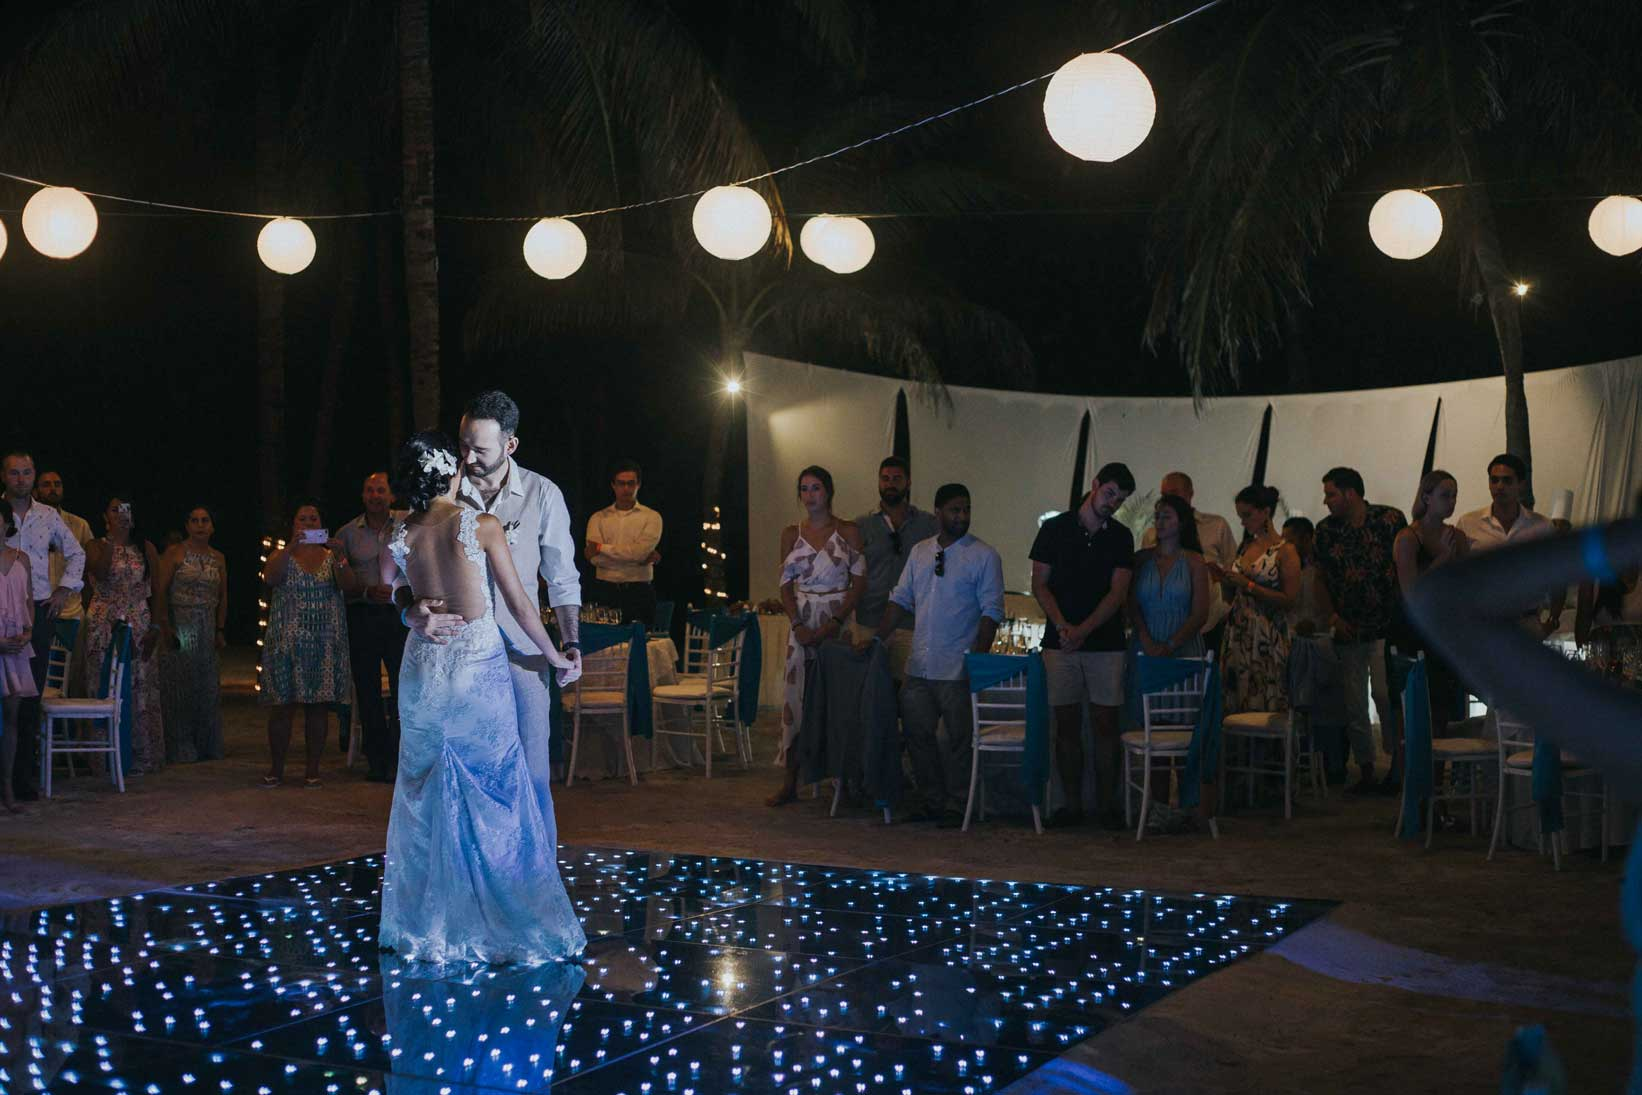 WEDDING CANCUN - WEDDING PHOTOGRAPHERS CANCUN, RIVIERA MAYA, PALAYA DEL CARMEN, FOTOGRAFOS DE BODA